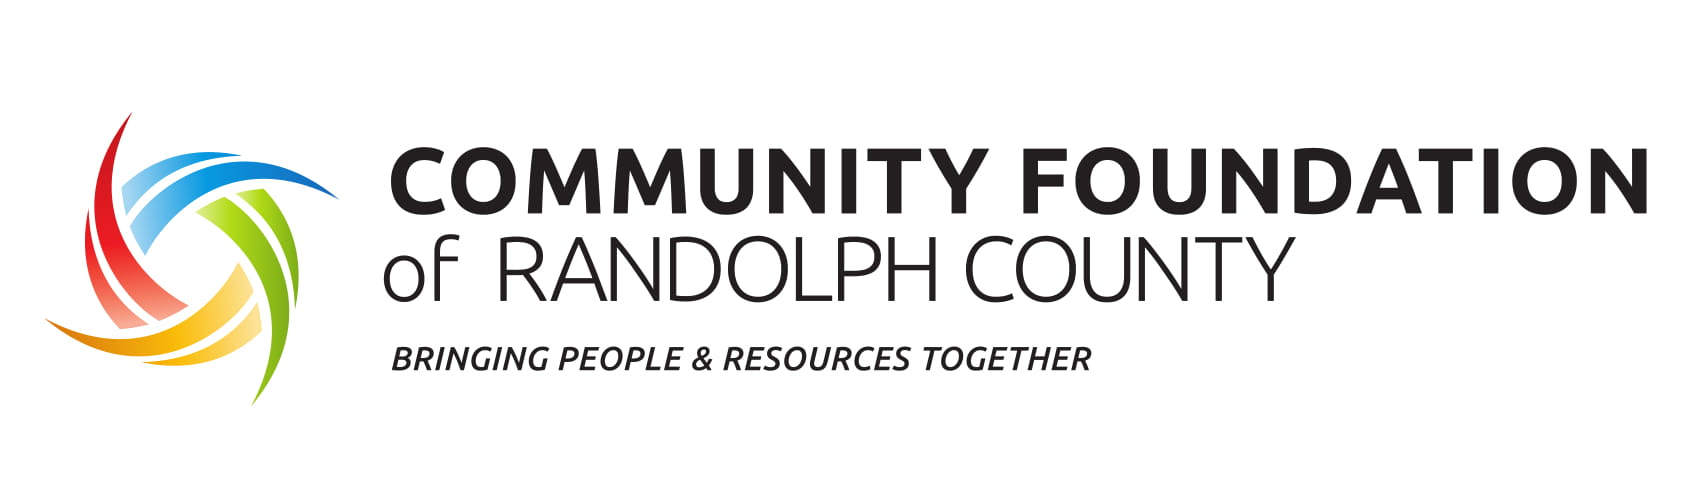 Community Foundation of Randolph County